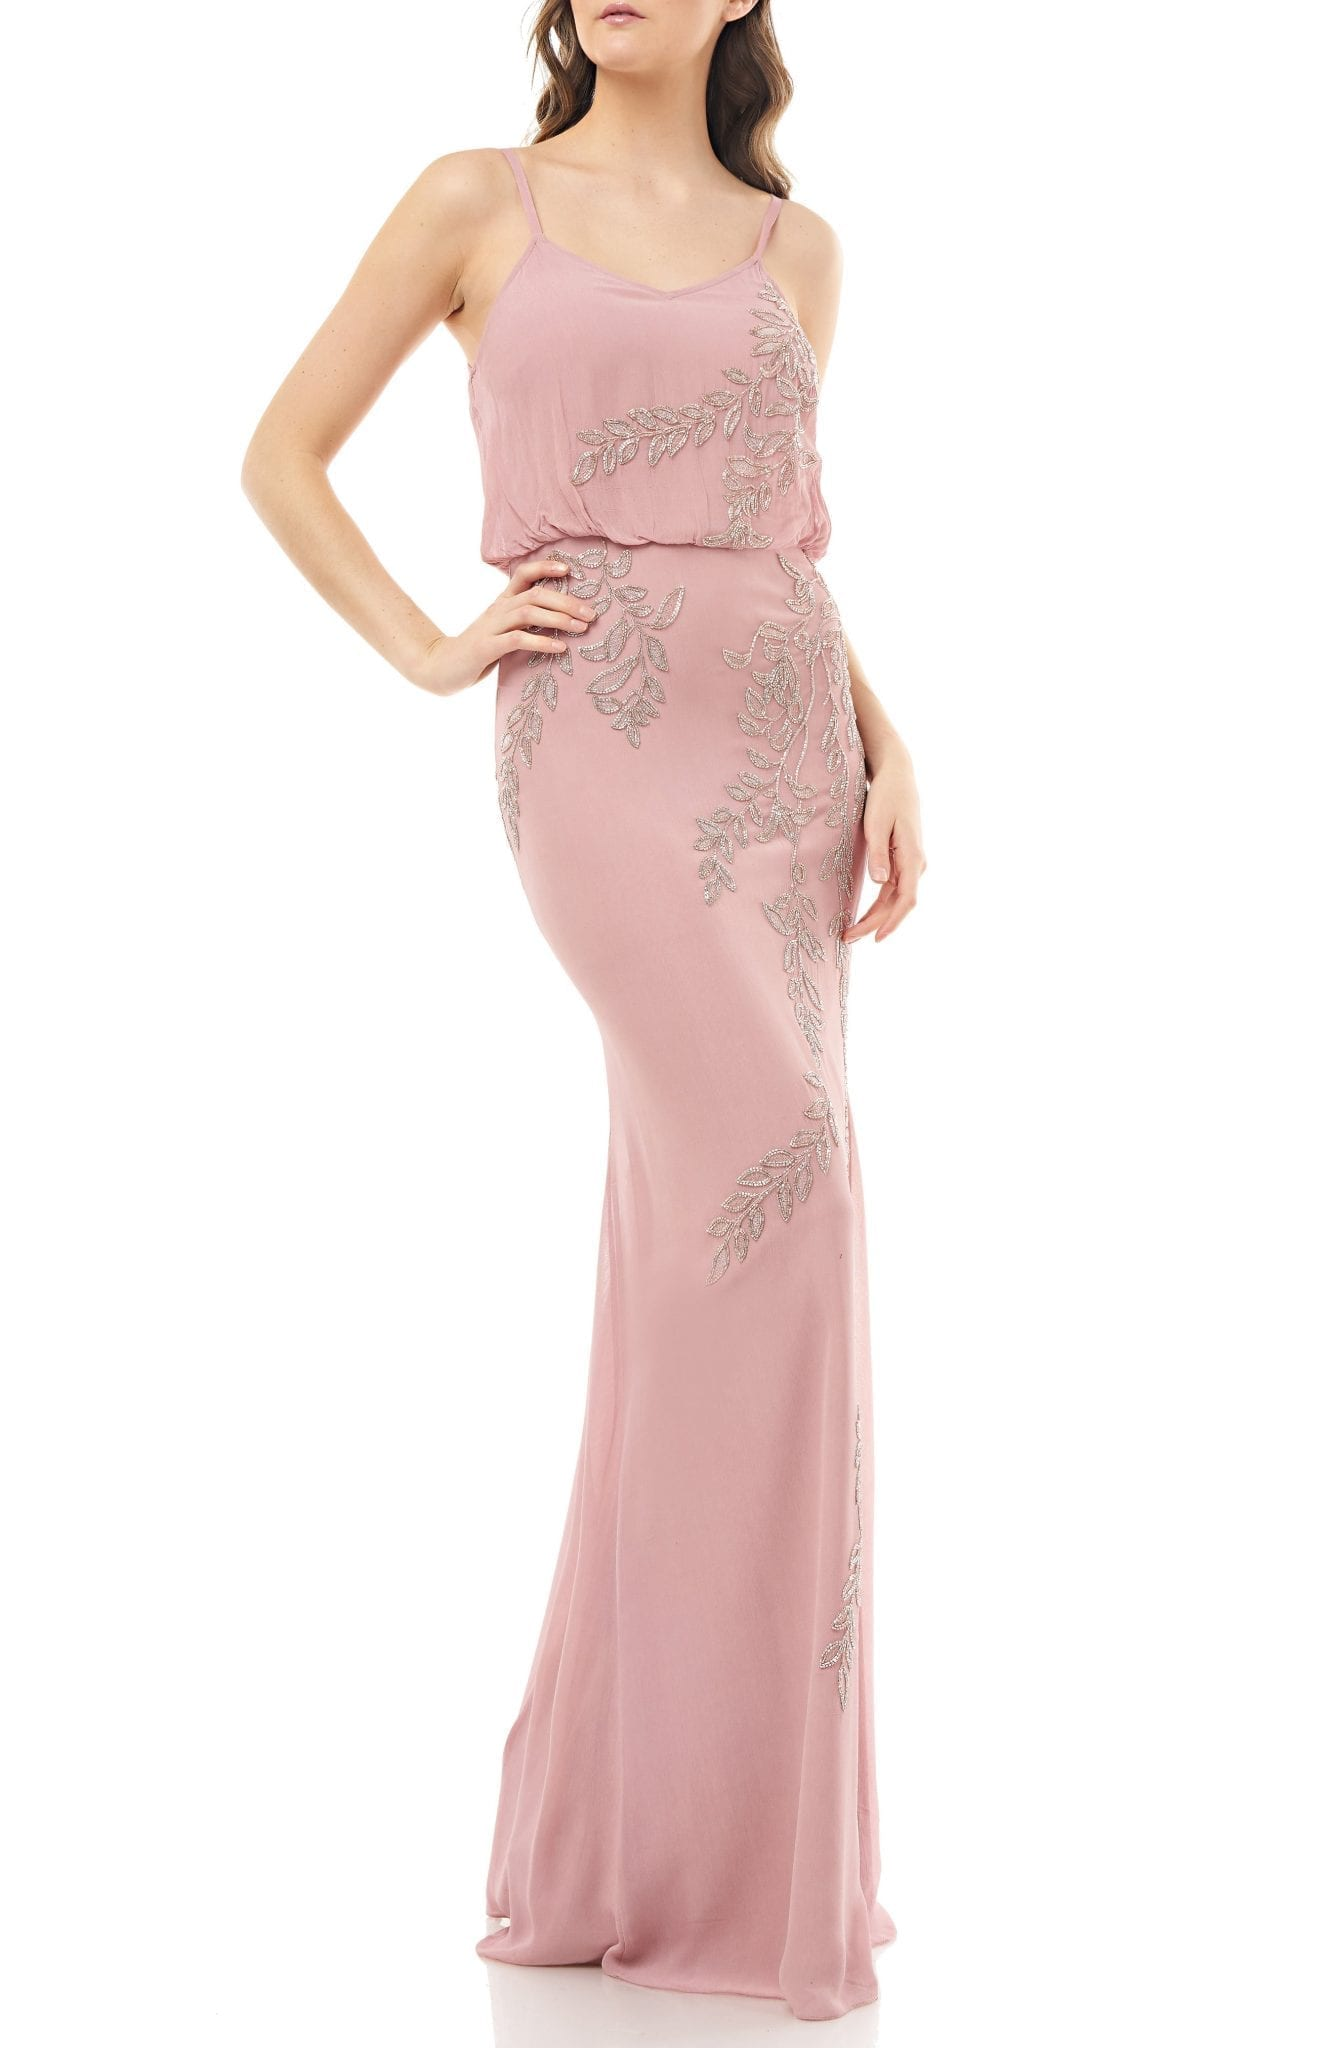 JS COLLECTIONS Beaded Blouson Cami Mermaid Gown